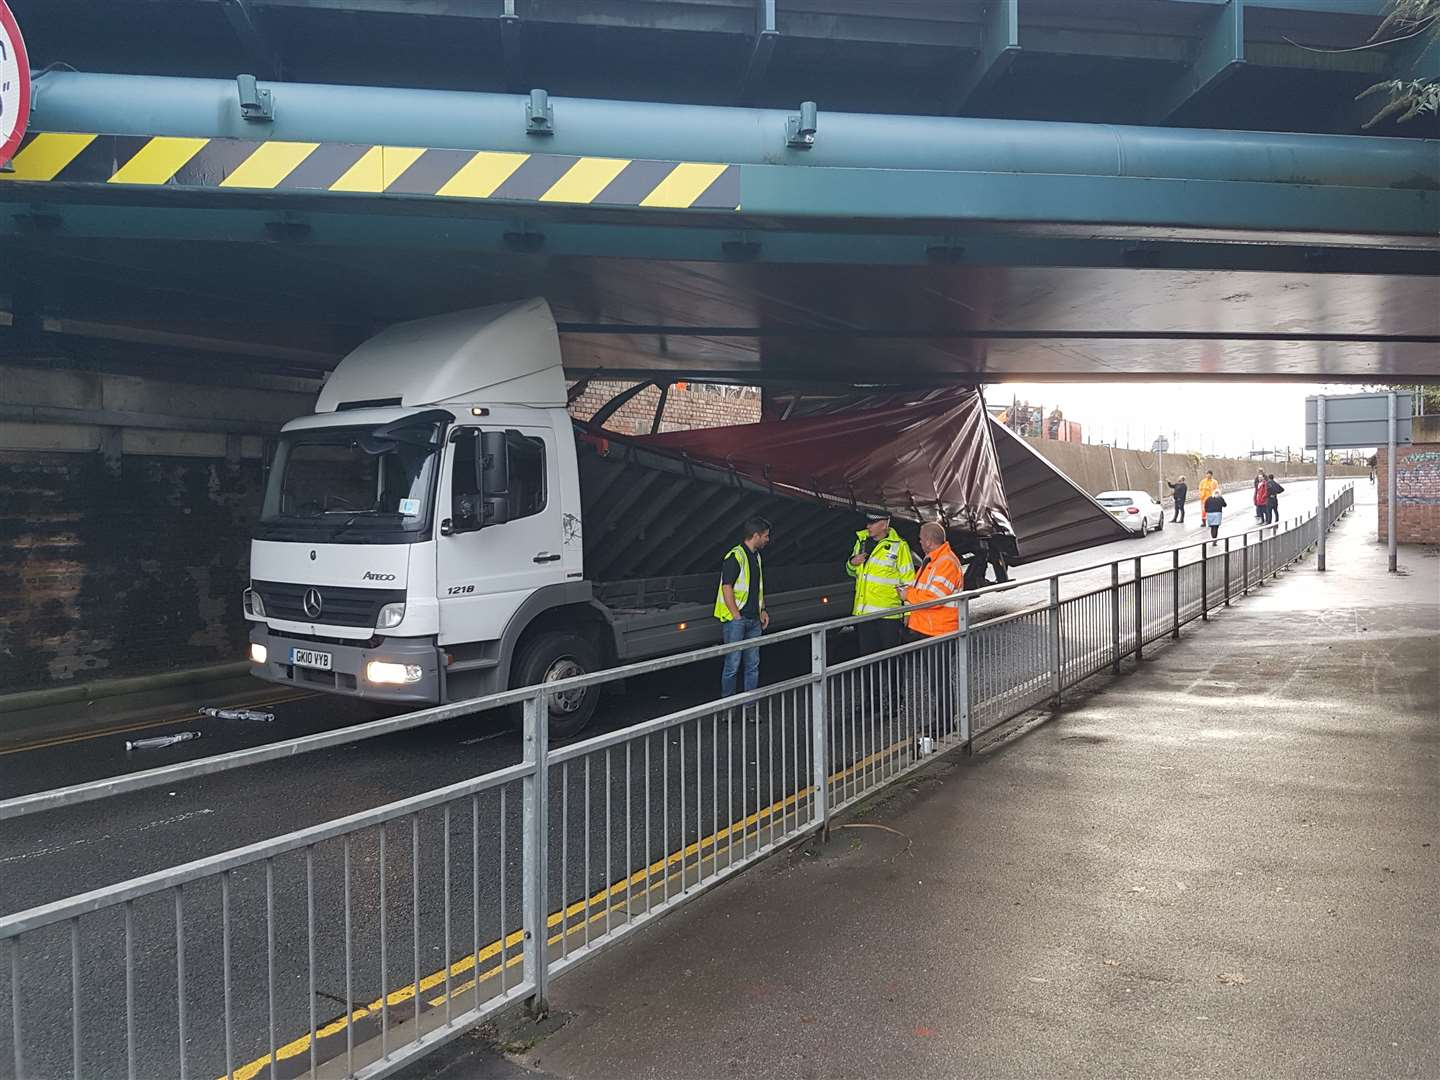 The top of the lorry has collapsed after it hit Newtown Road bridge (18826501)